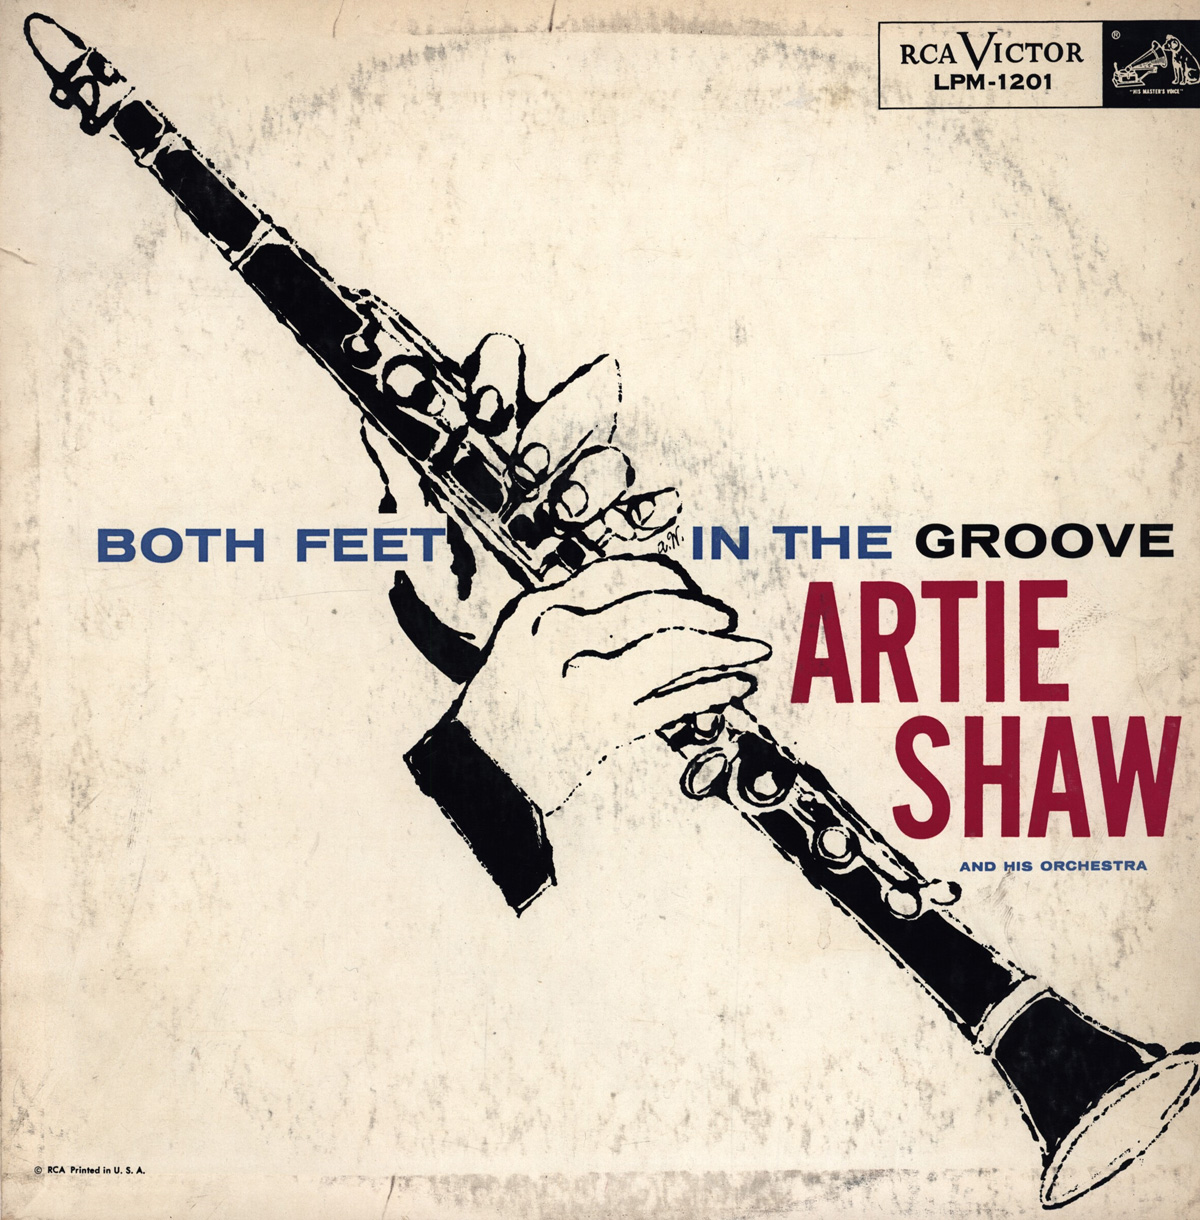 Artie Shaw Genre Lp Cover For Artie Shaw S Both Feet In The Groove Illustration